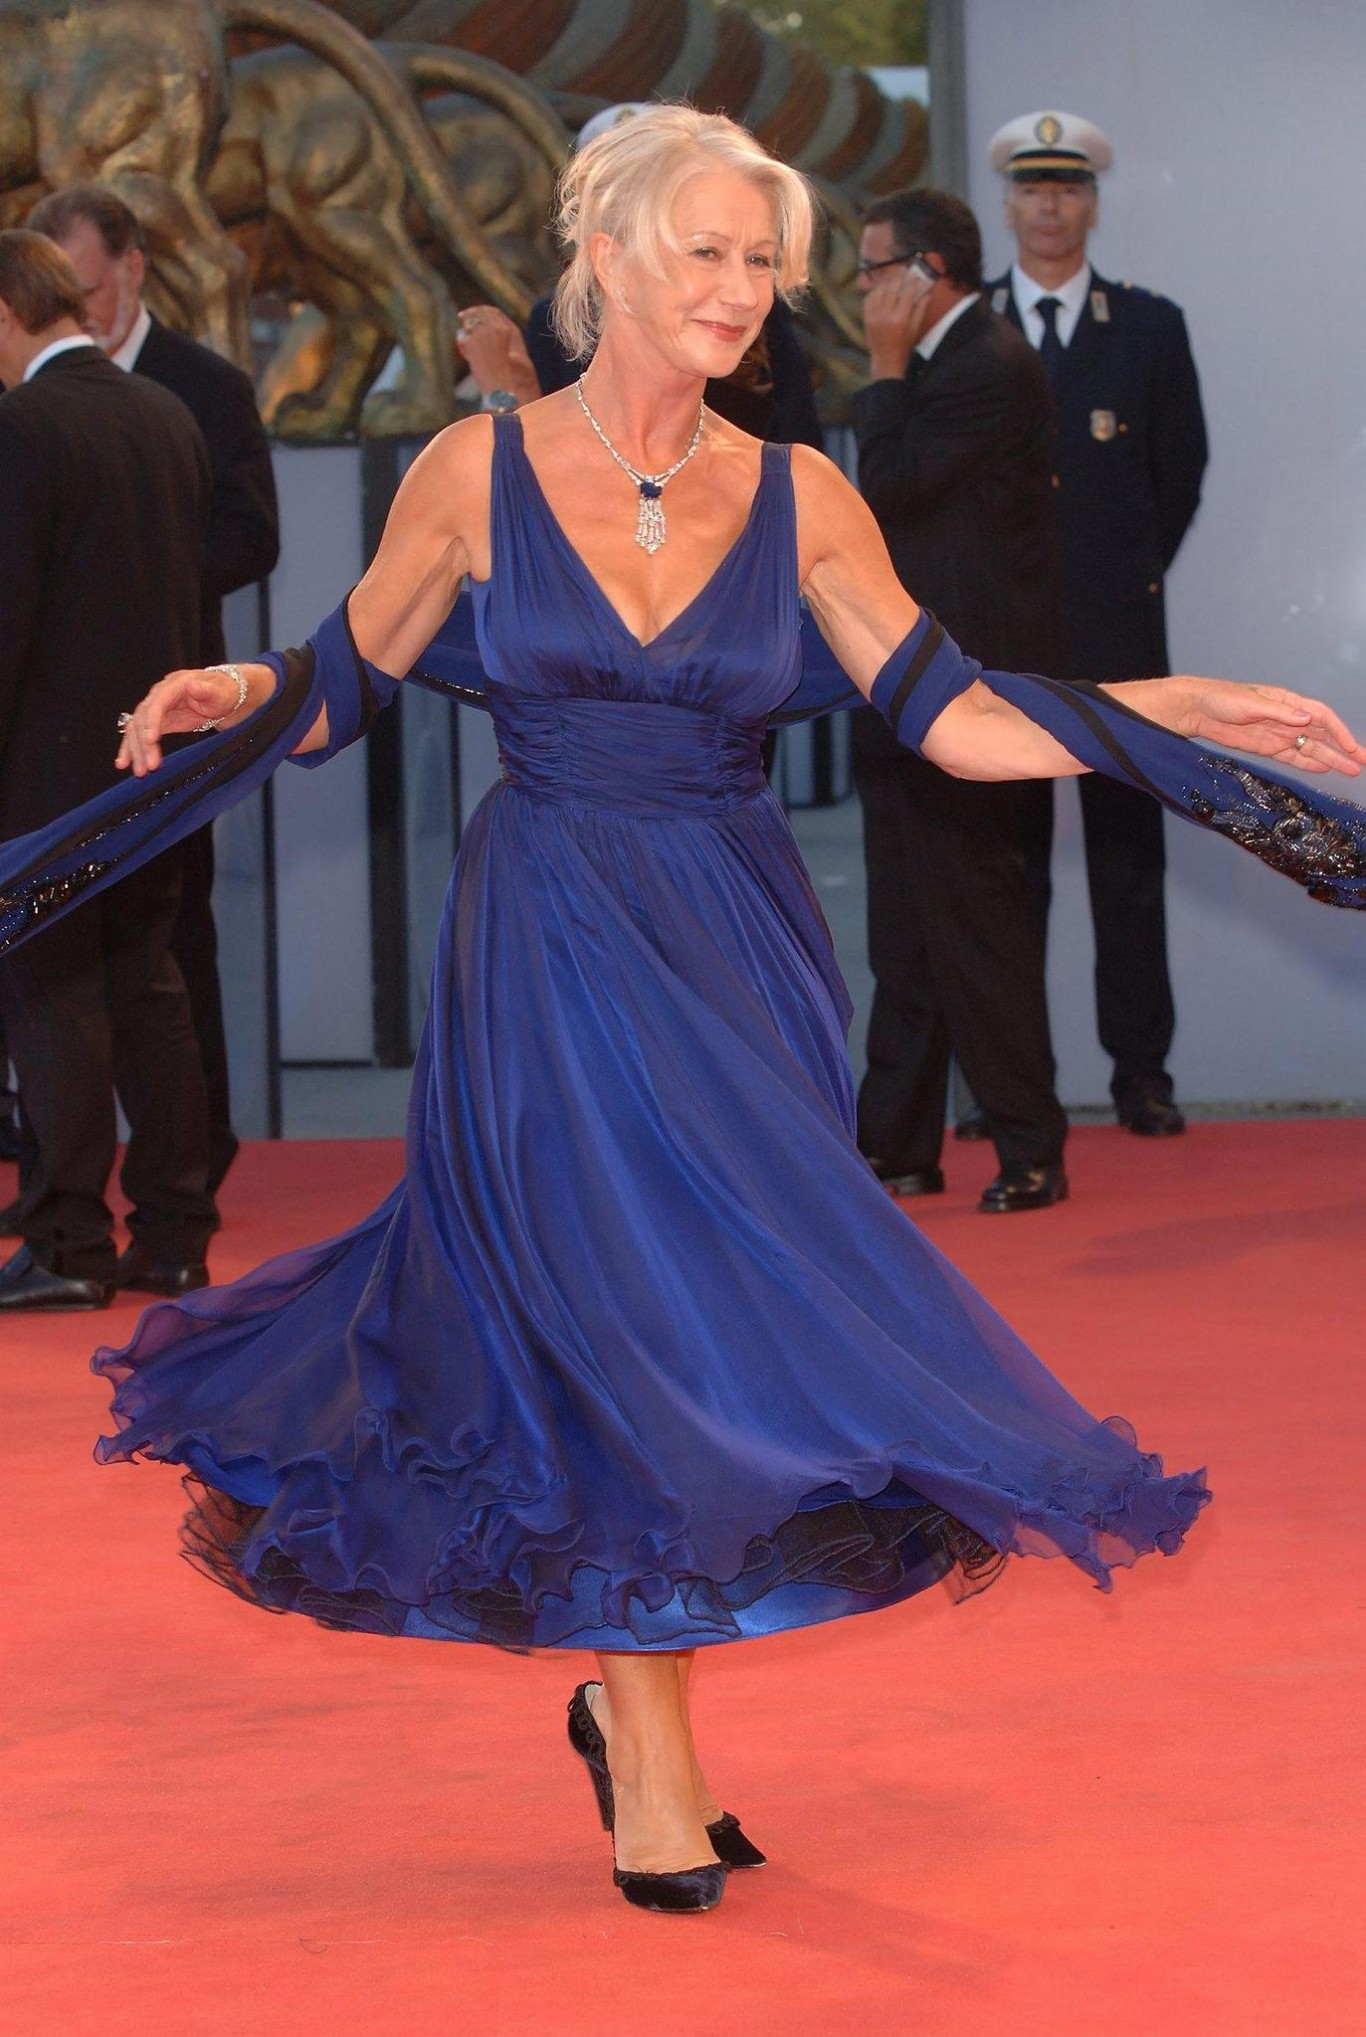 Helen Mirren swishes her skirt in a blue dress on the red carpet in Venice in 2006